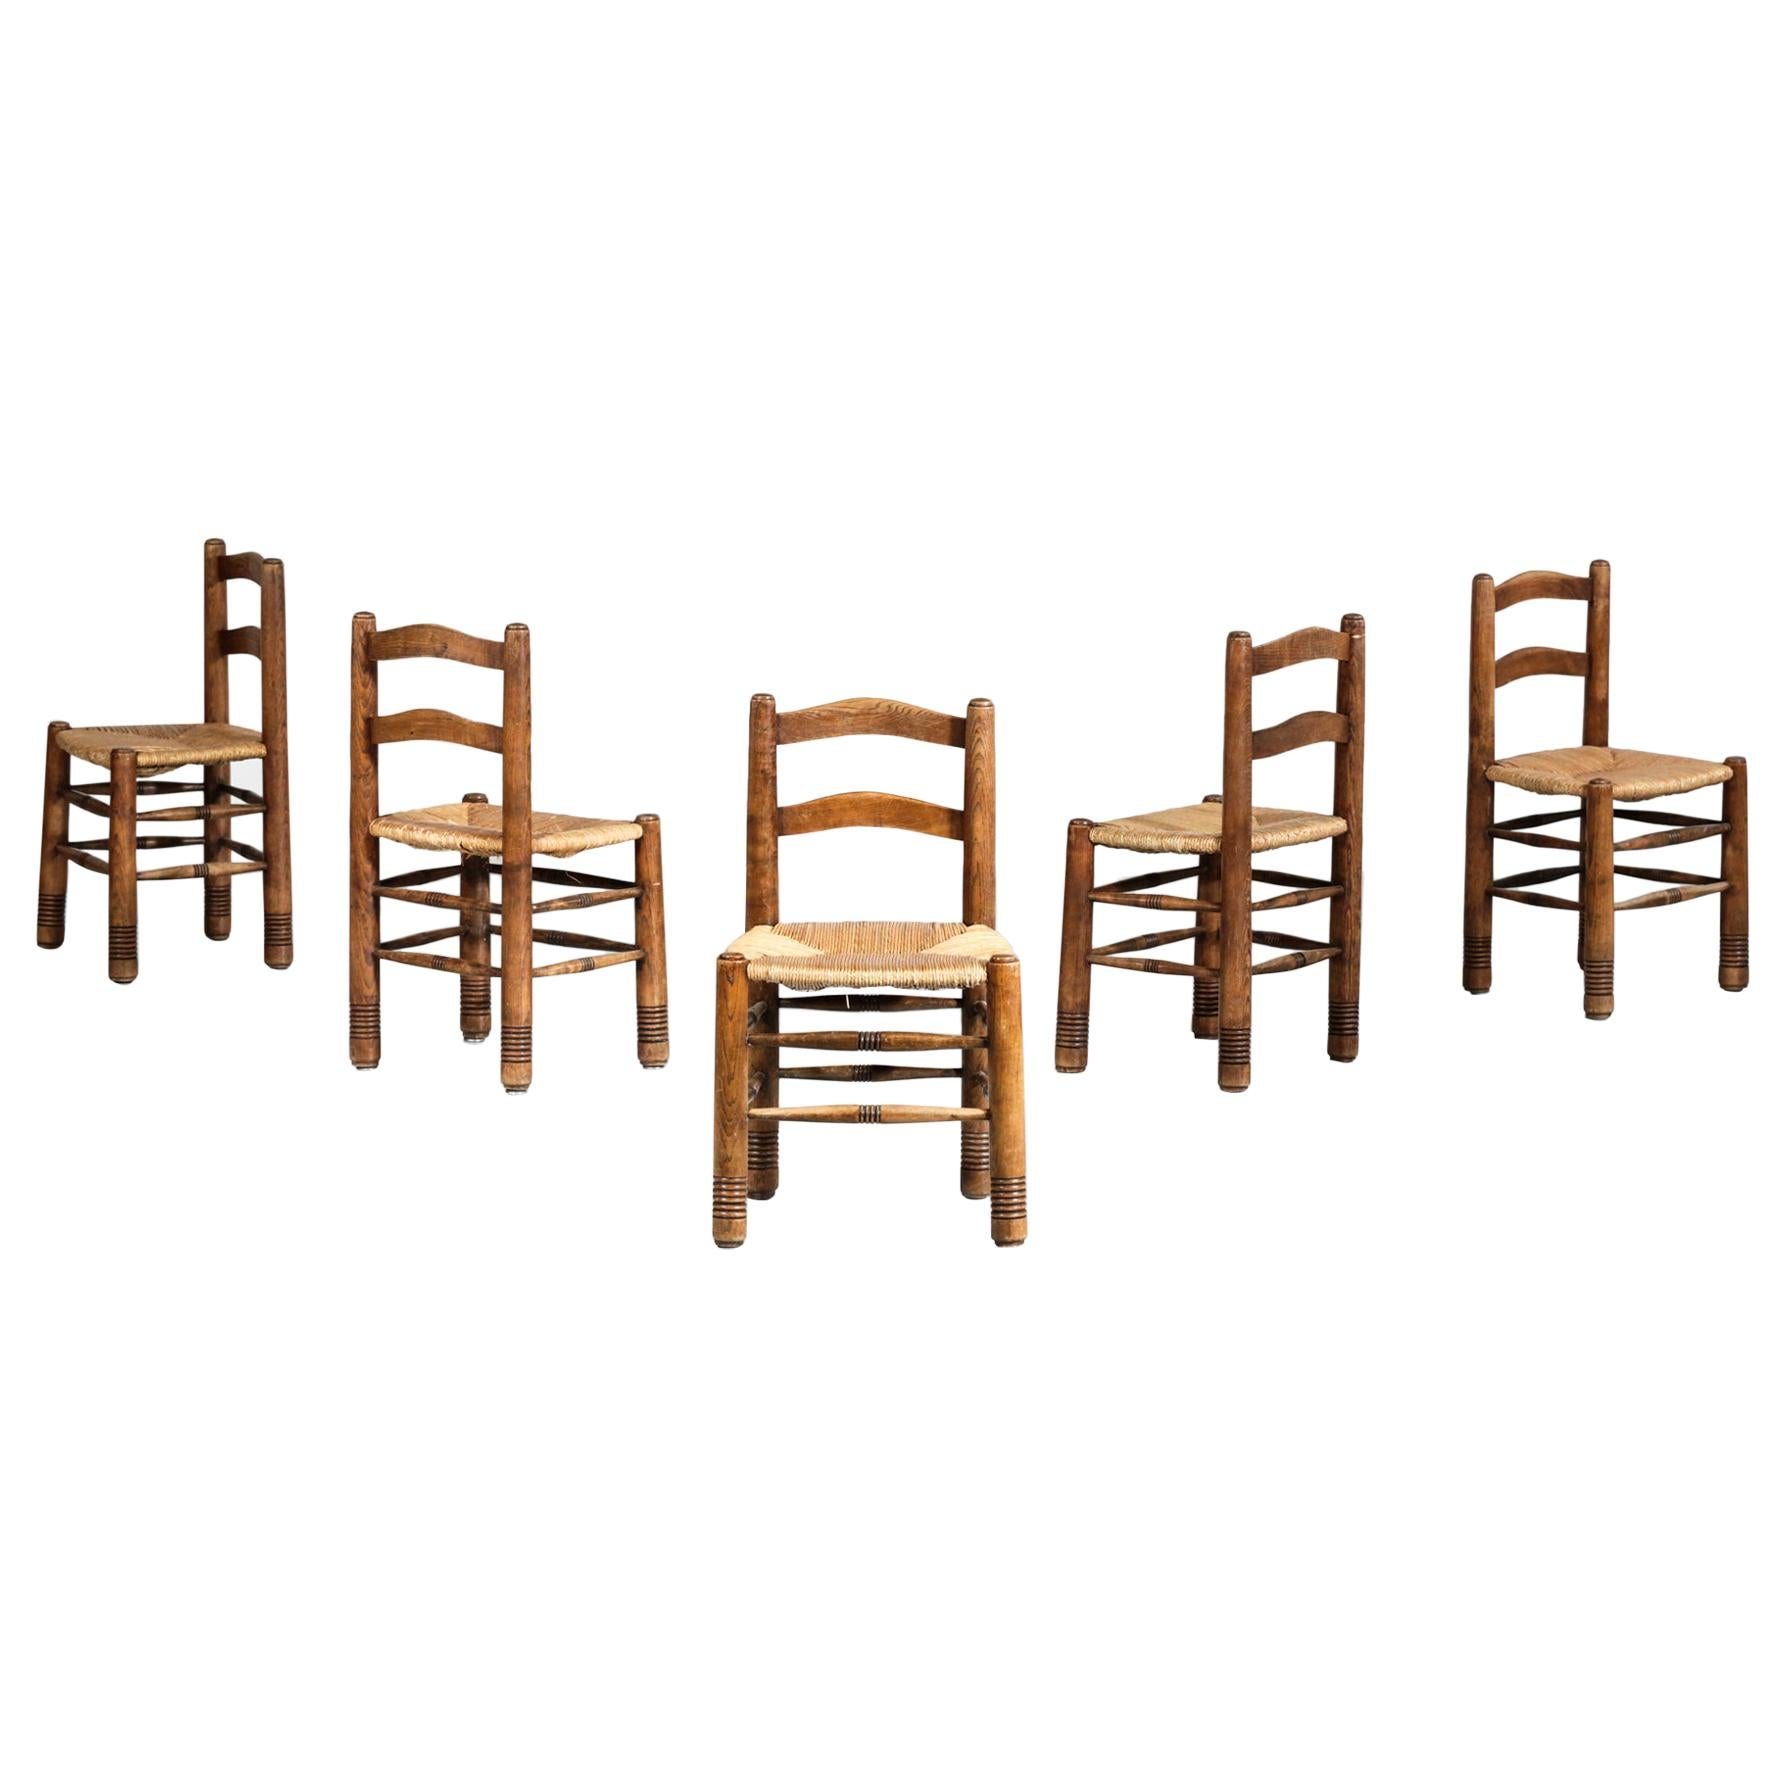 Set of 5 Straw Chairs Charles Dudouyt Style French Design